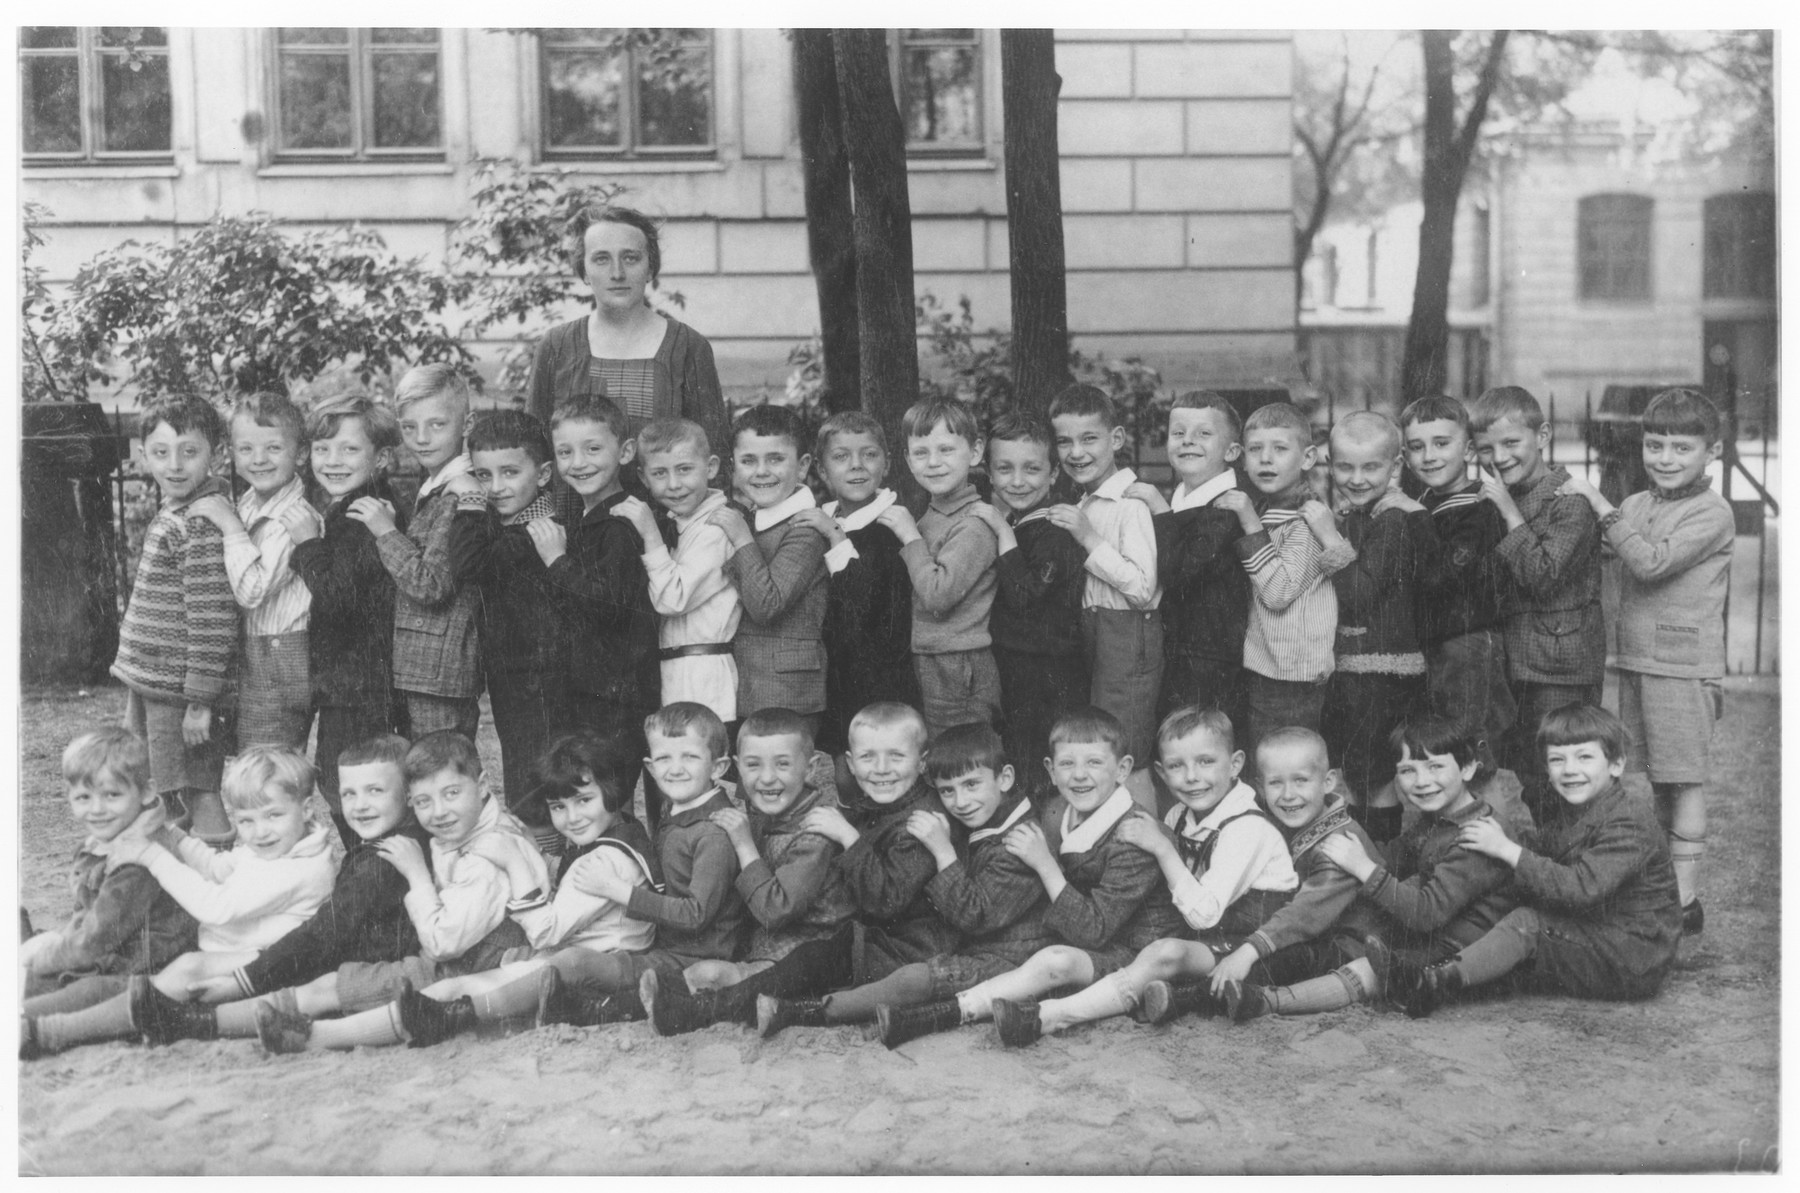 Group portrait of a first grade class in Leipzig Germany.  Edgar David Soldinger is pictured in the back row, eleventh from the left.